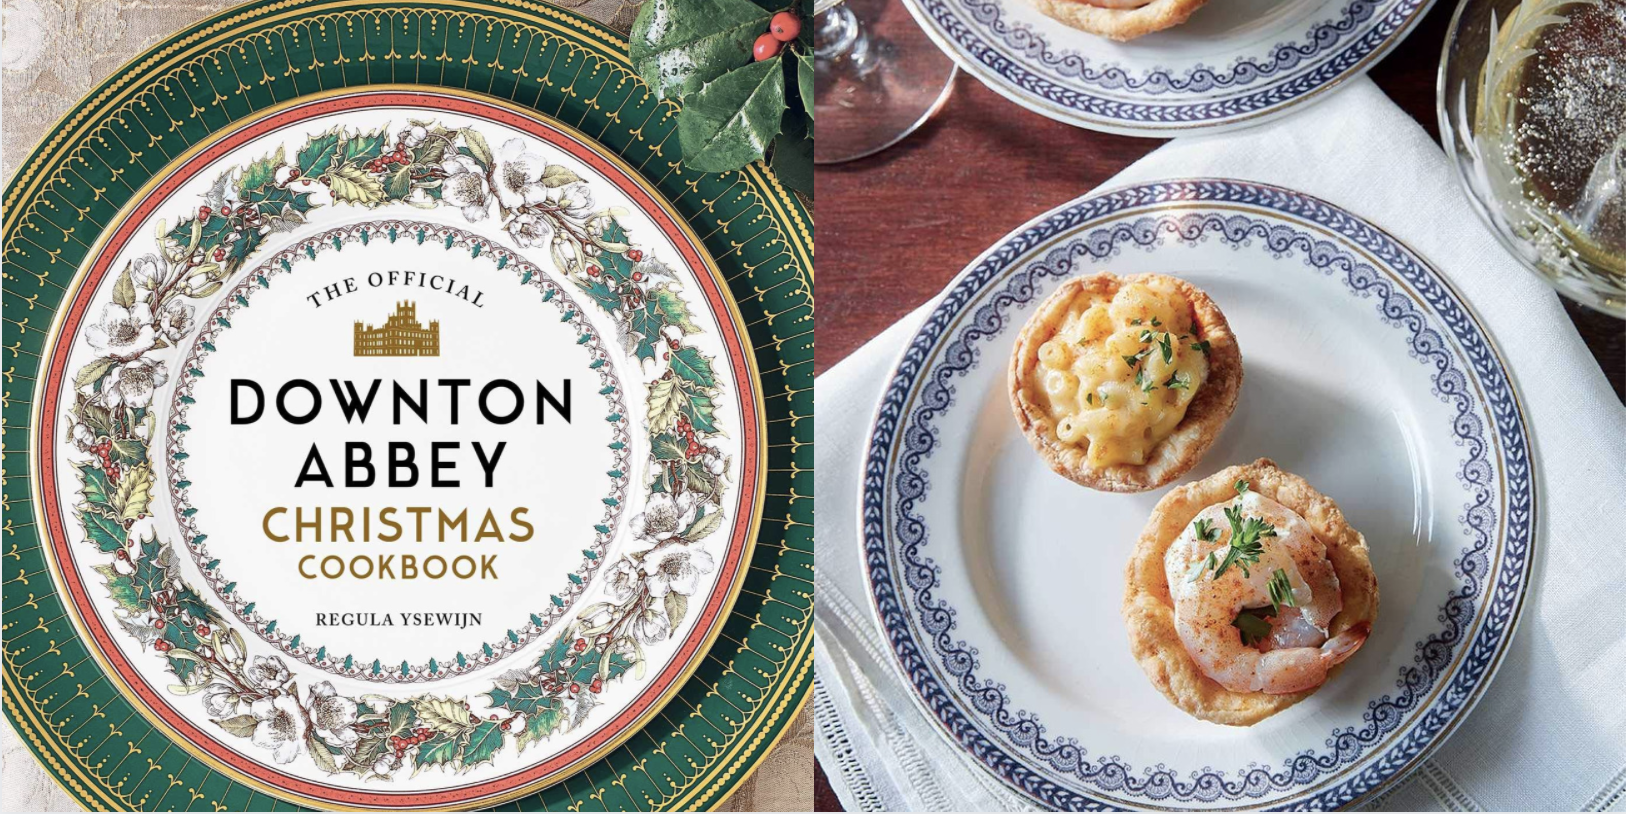 A Christmas Cookbook Inspired by 'Downton Abbey' Is Coming and Includes Historically Accurate Recipes